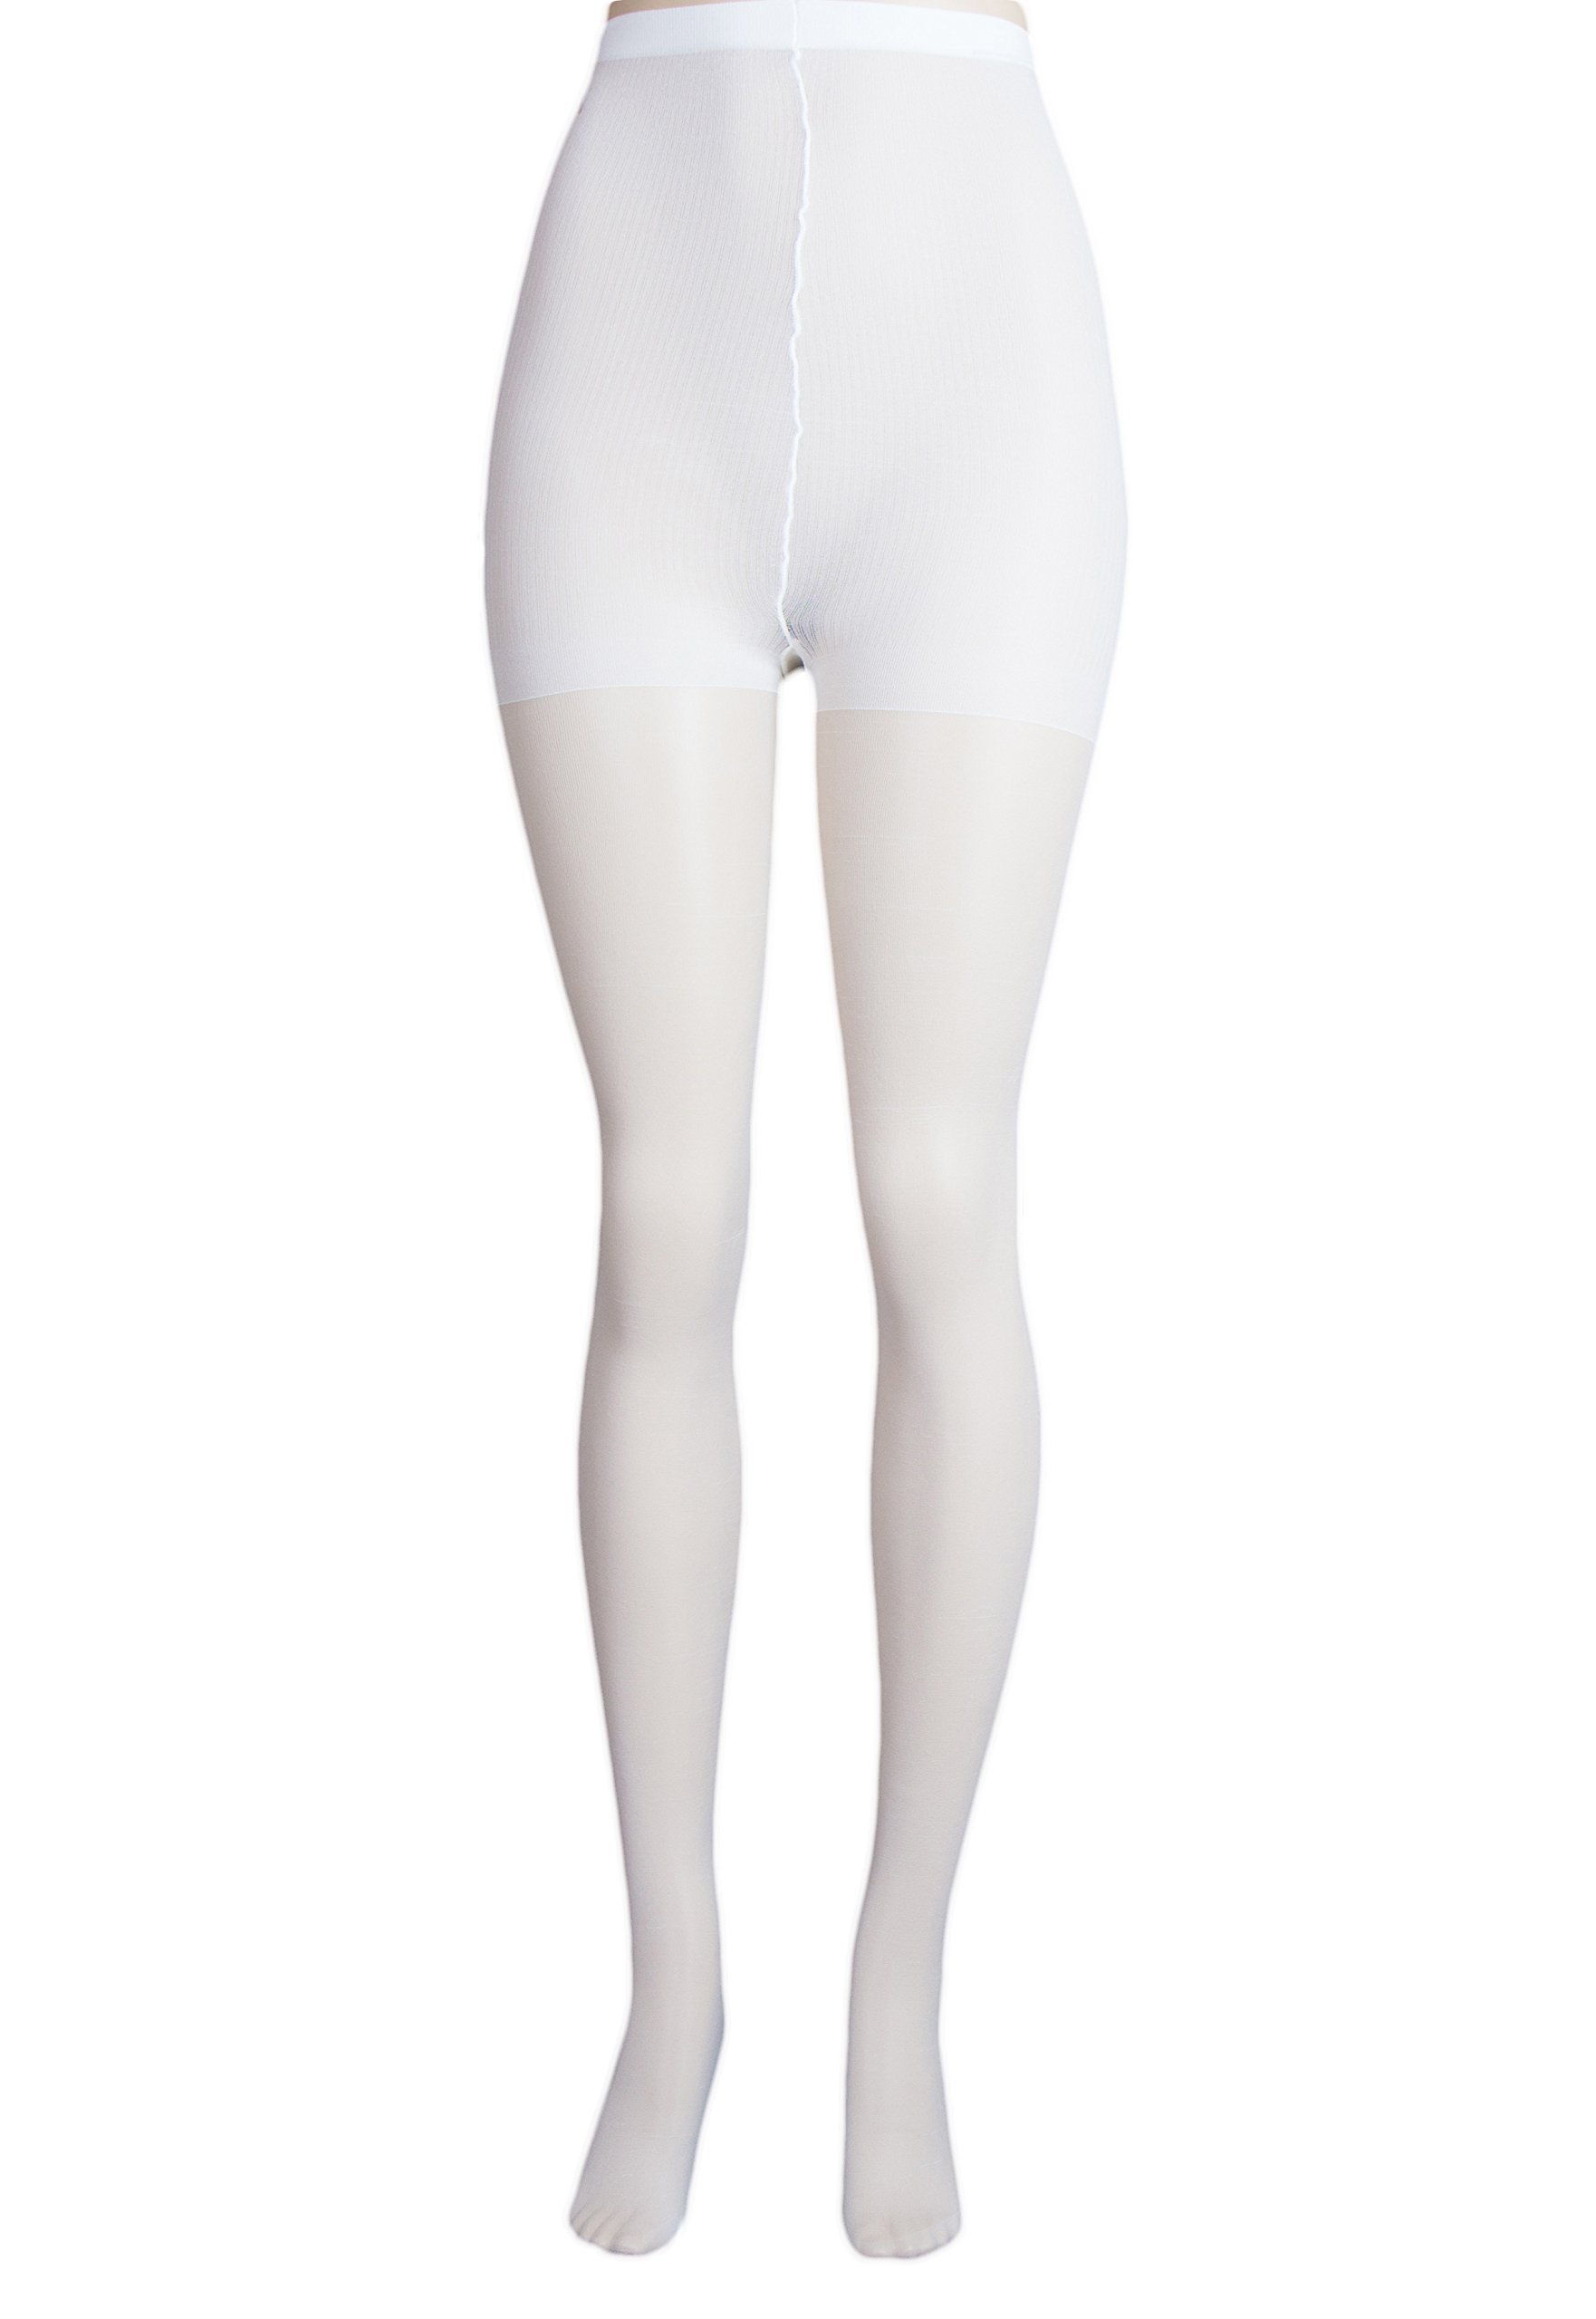 02a8a380c Galleon - Lissele Women s Plus Size Day Sheer Pantyhose (Pack Of 3) (White